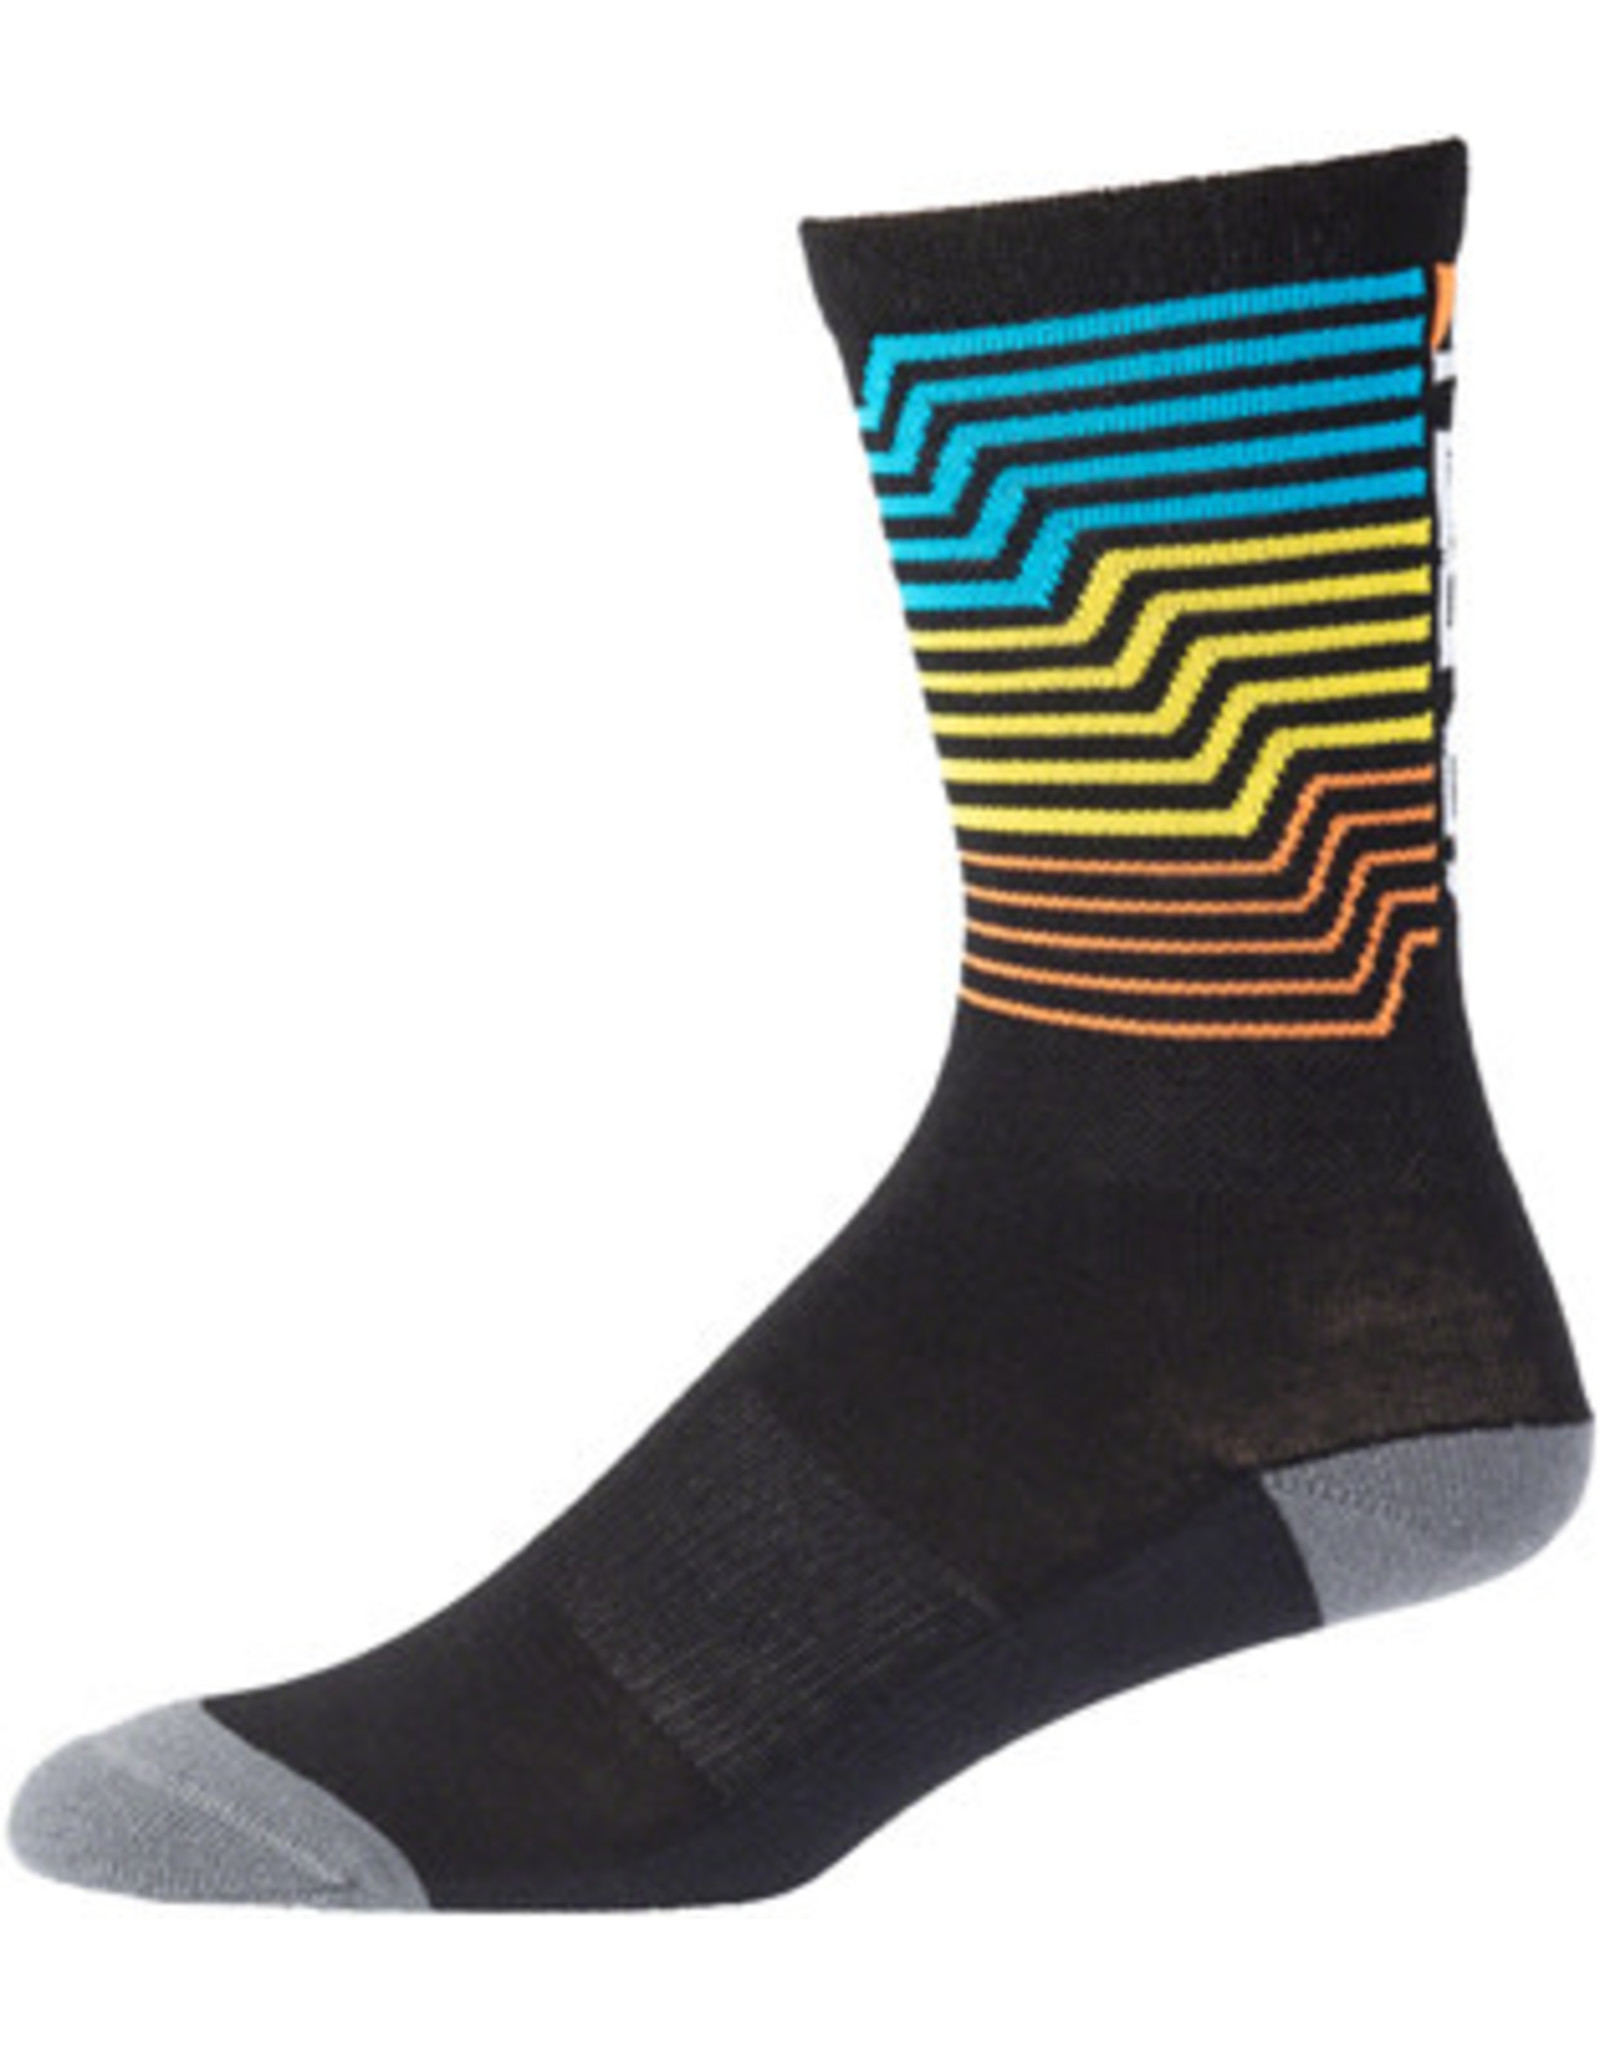 "45NRTH 45N Midweight Electric Rift Sock - 7"", Multi, Small"